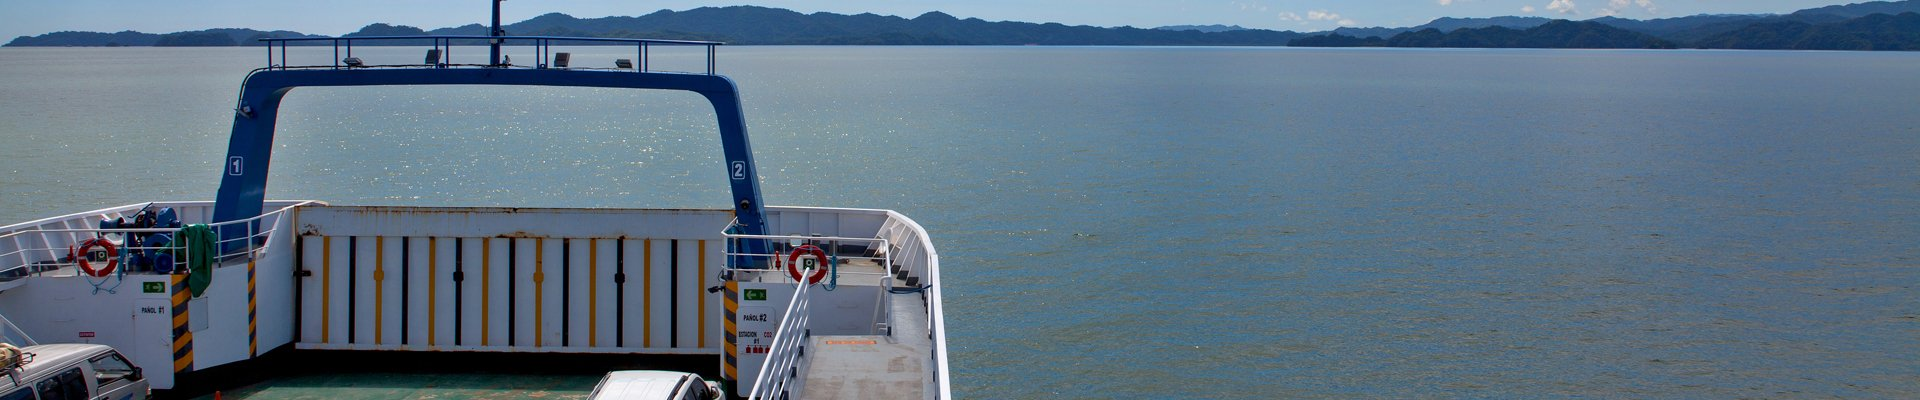 Ferry from Puntarenas to Paquera, Costa Rica